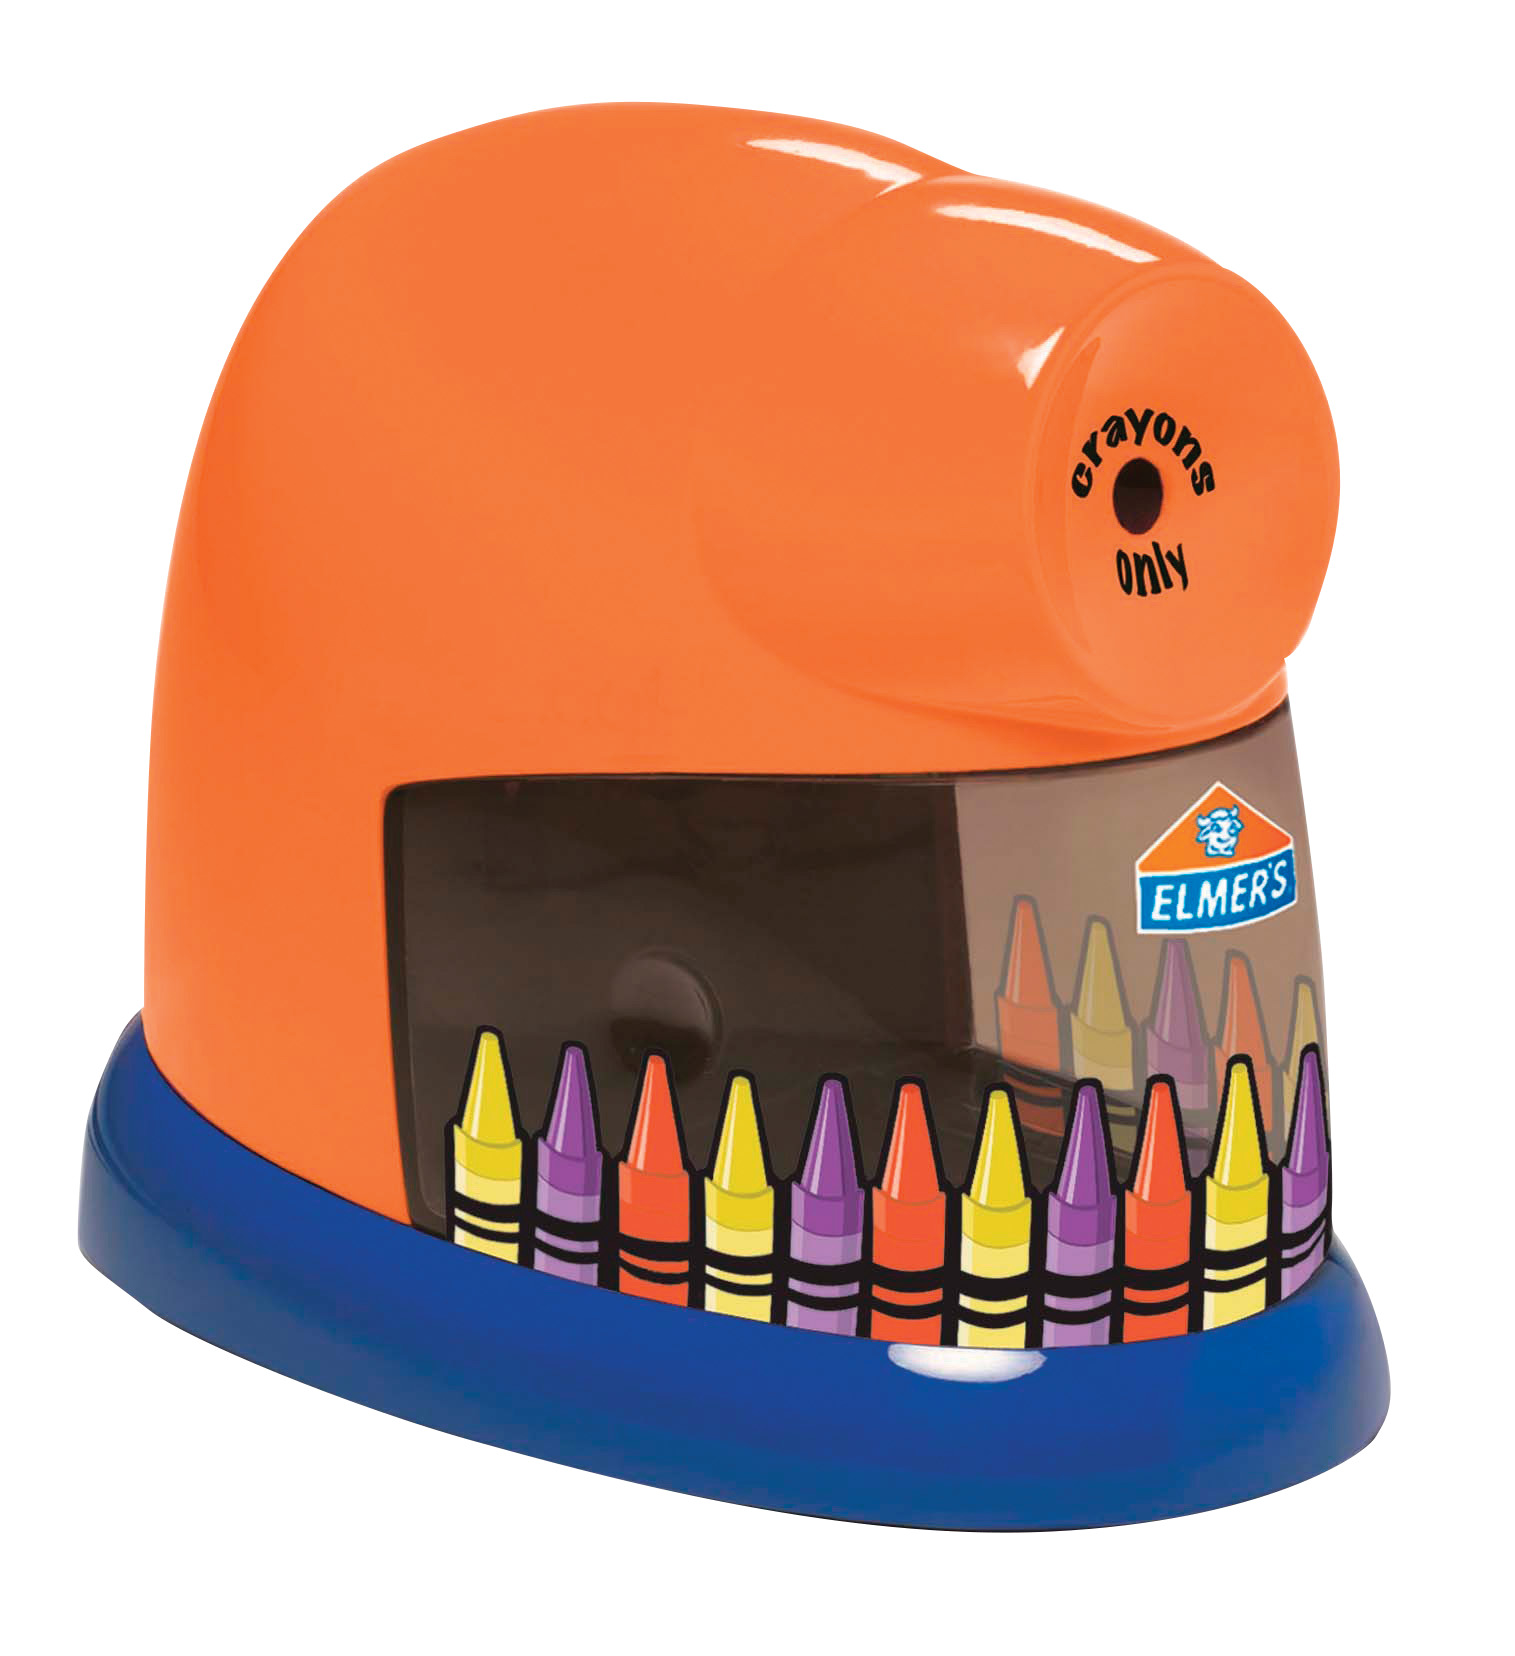 Elmer's CrayonPro Electric Crayon Sharpener w/ Replacable Blade